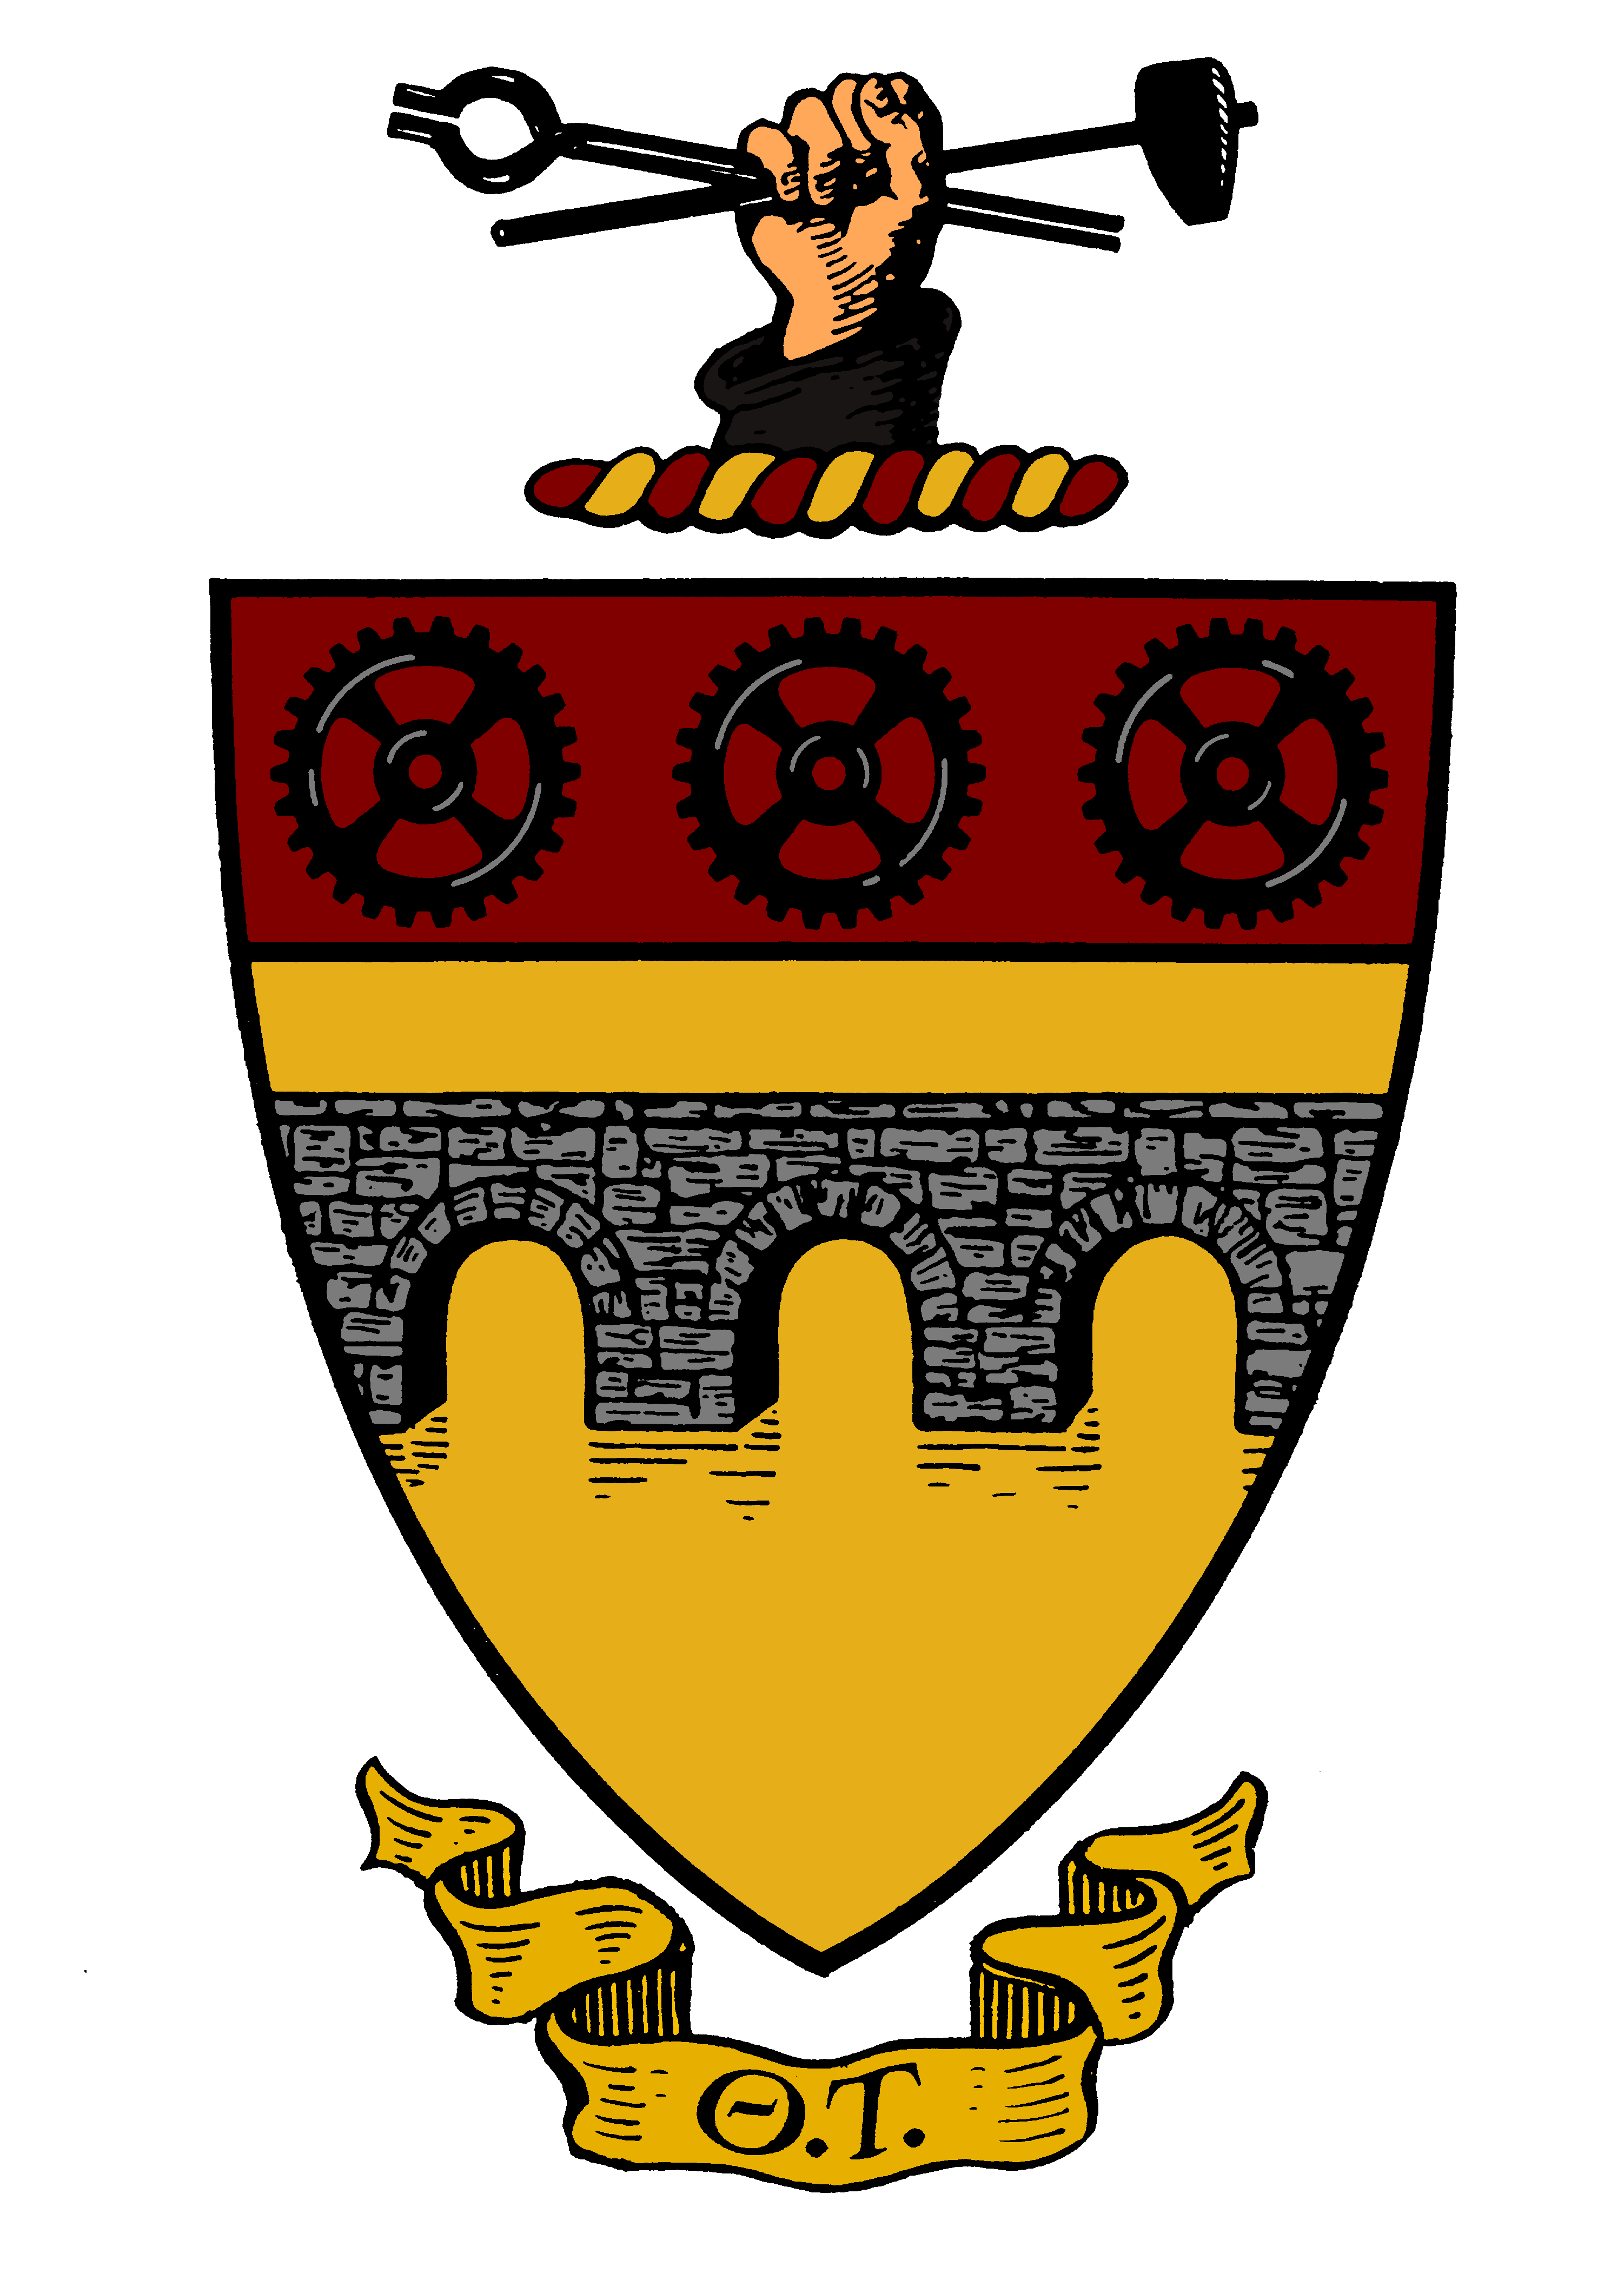 Theta Tau - Coat of Arms